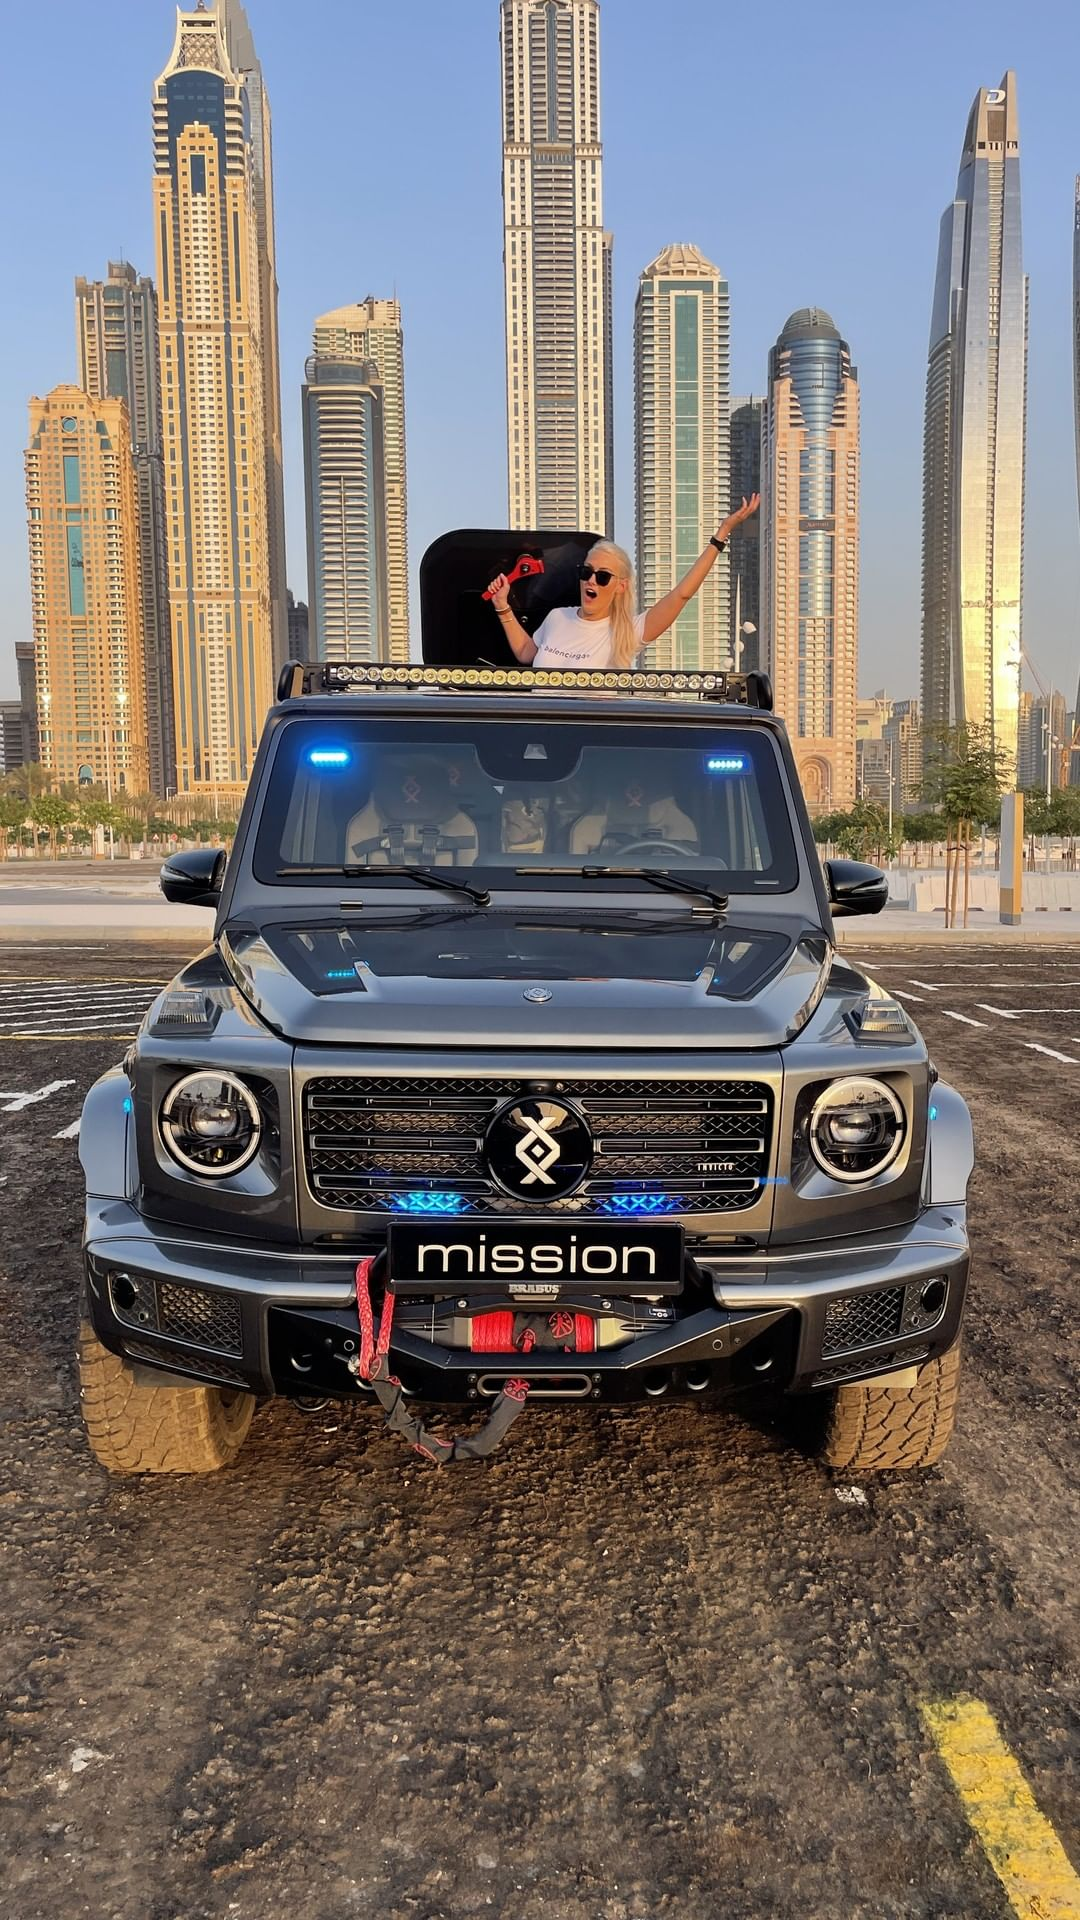 This blast-proof G-wagon has an escape hatch and oxygen tank! @theoffi – Alexandra Mary – supercar blondie